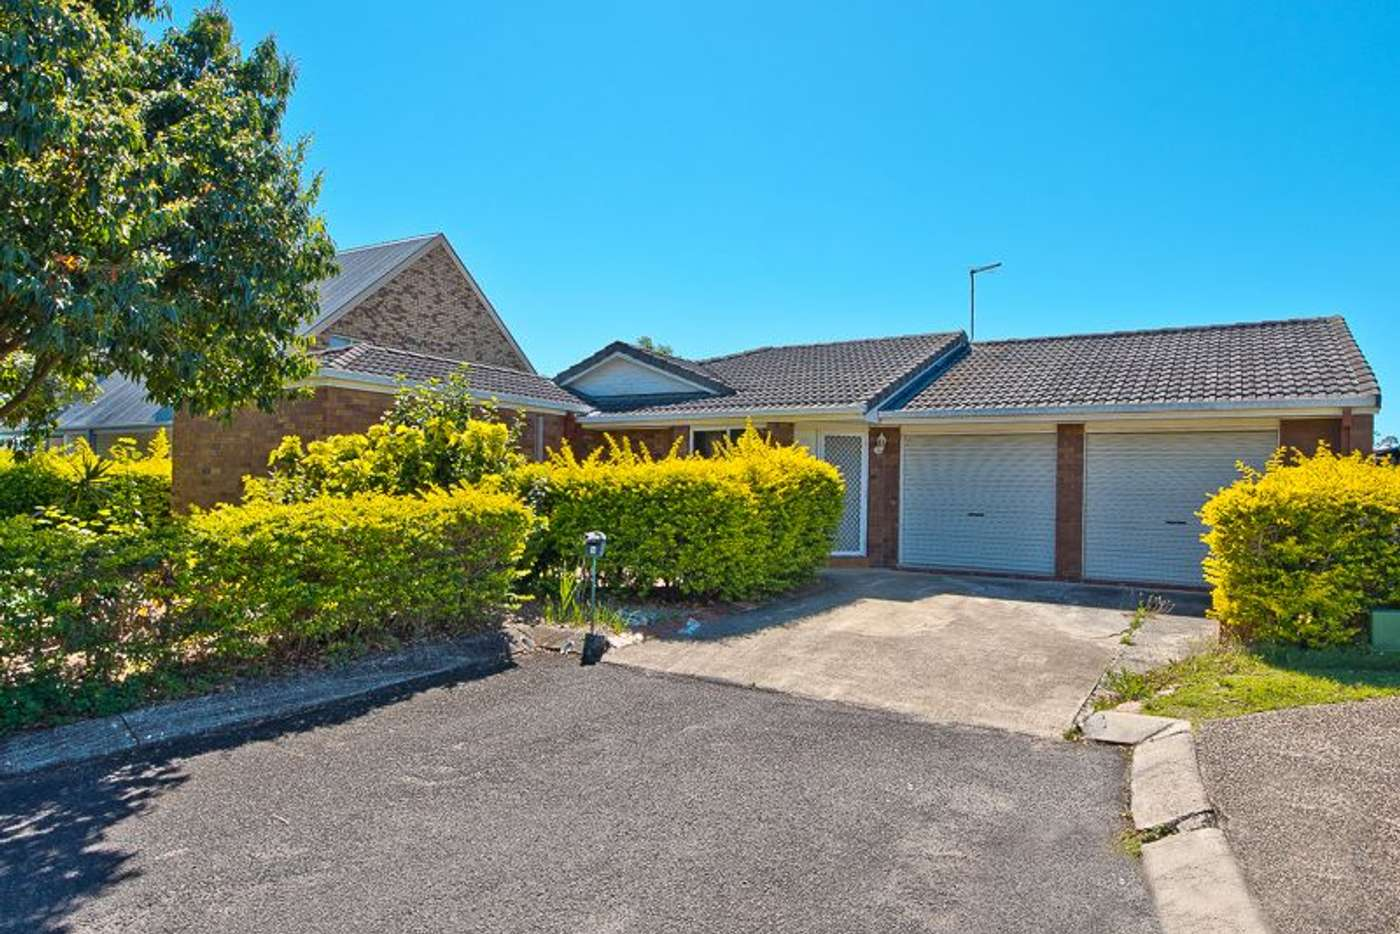 Main view of Homely house listing, 9 Tulip Close, Fitzgibbon QLD 4018